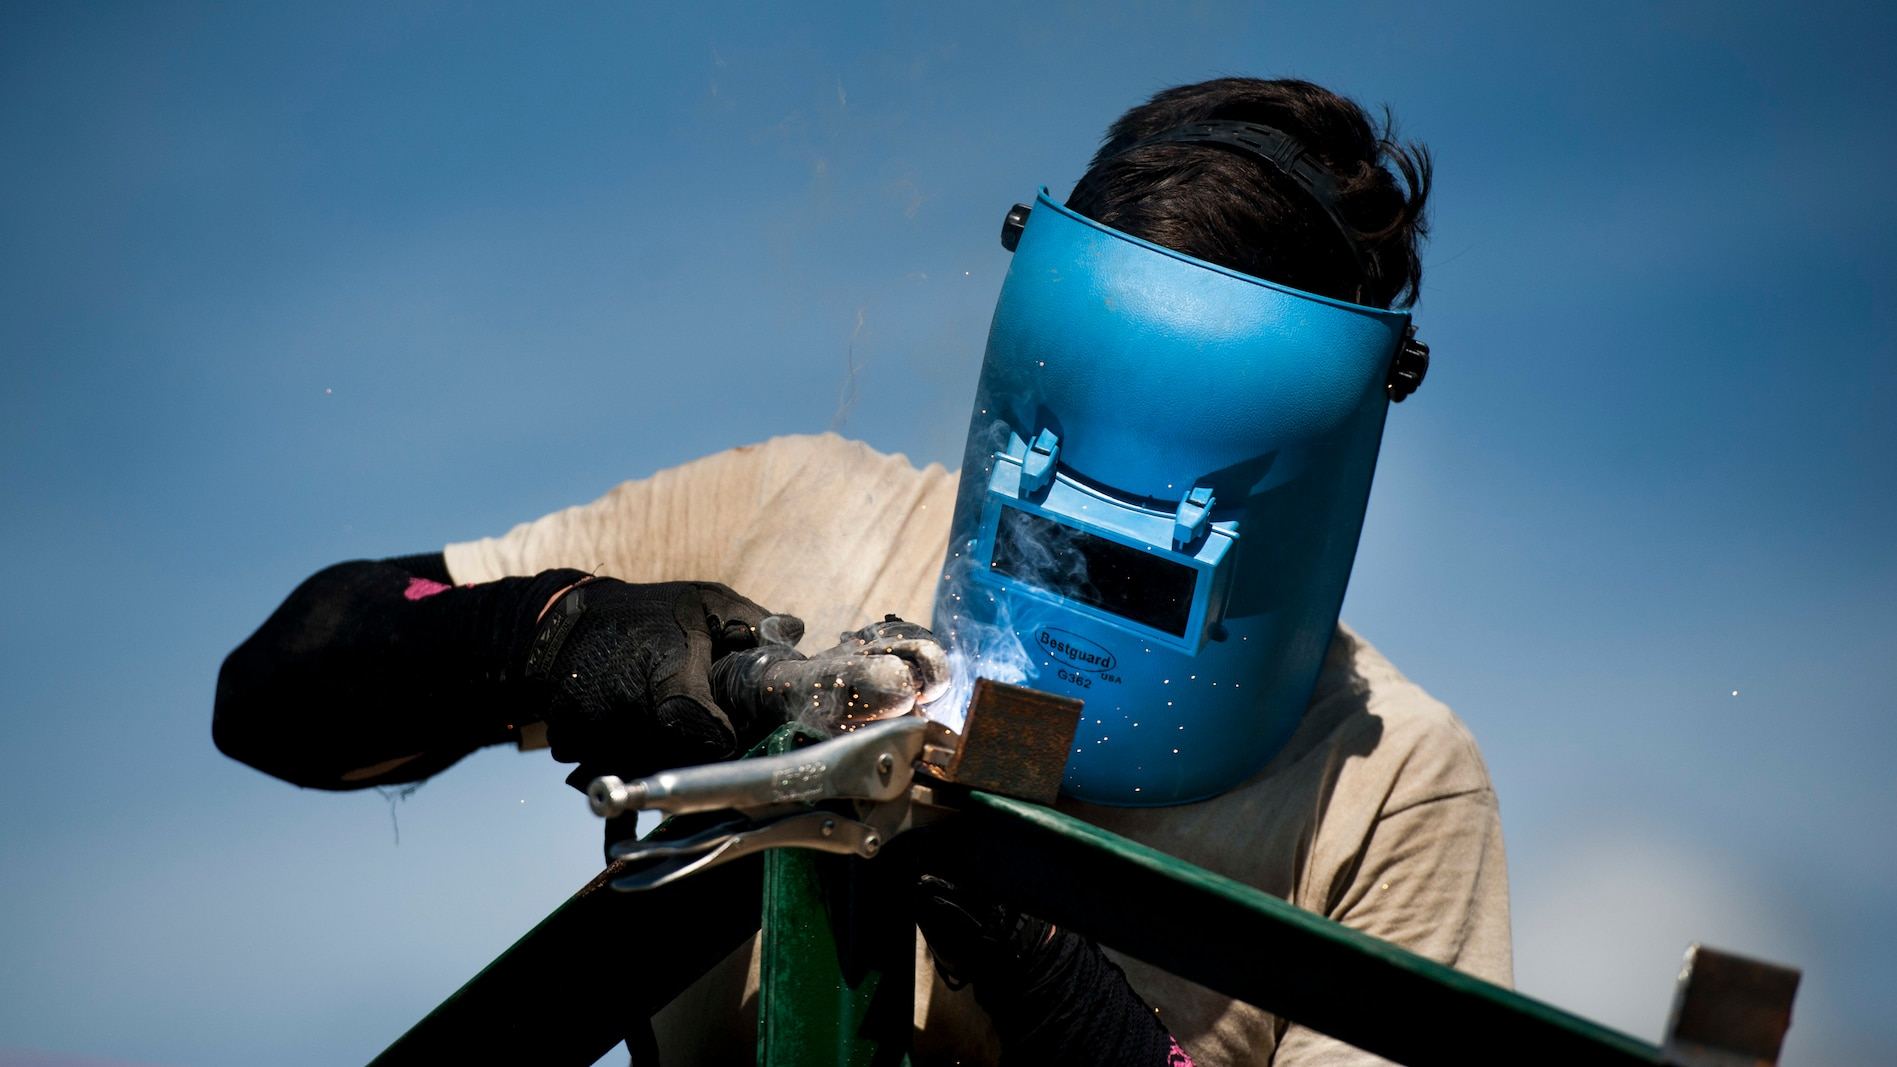 U.S. Air Force Airman 1st Class Adrian Wance welds brackets to roof-support beams during Balikatan 2017 in Ormoc City, Leyte, April 27, 2017.